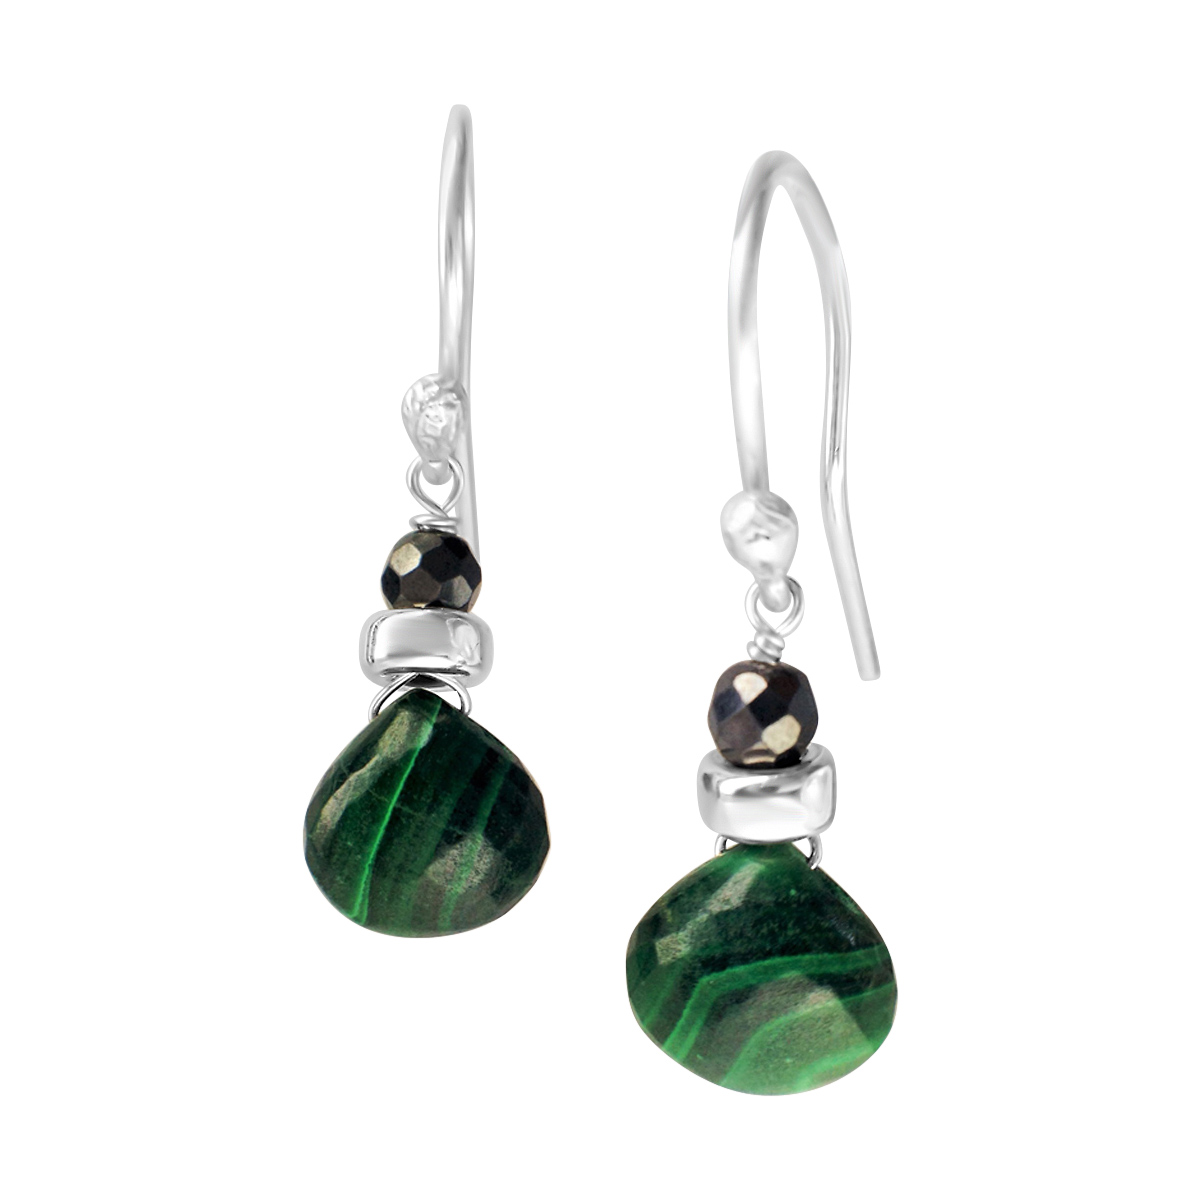 Perfume Bottle malachite earrings